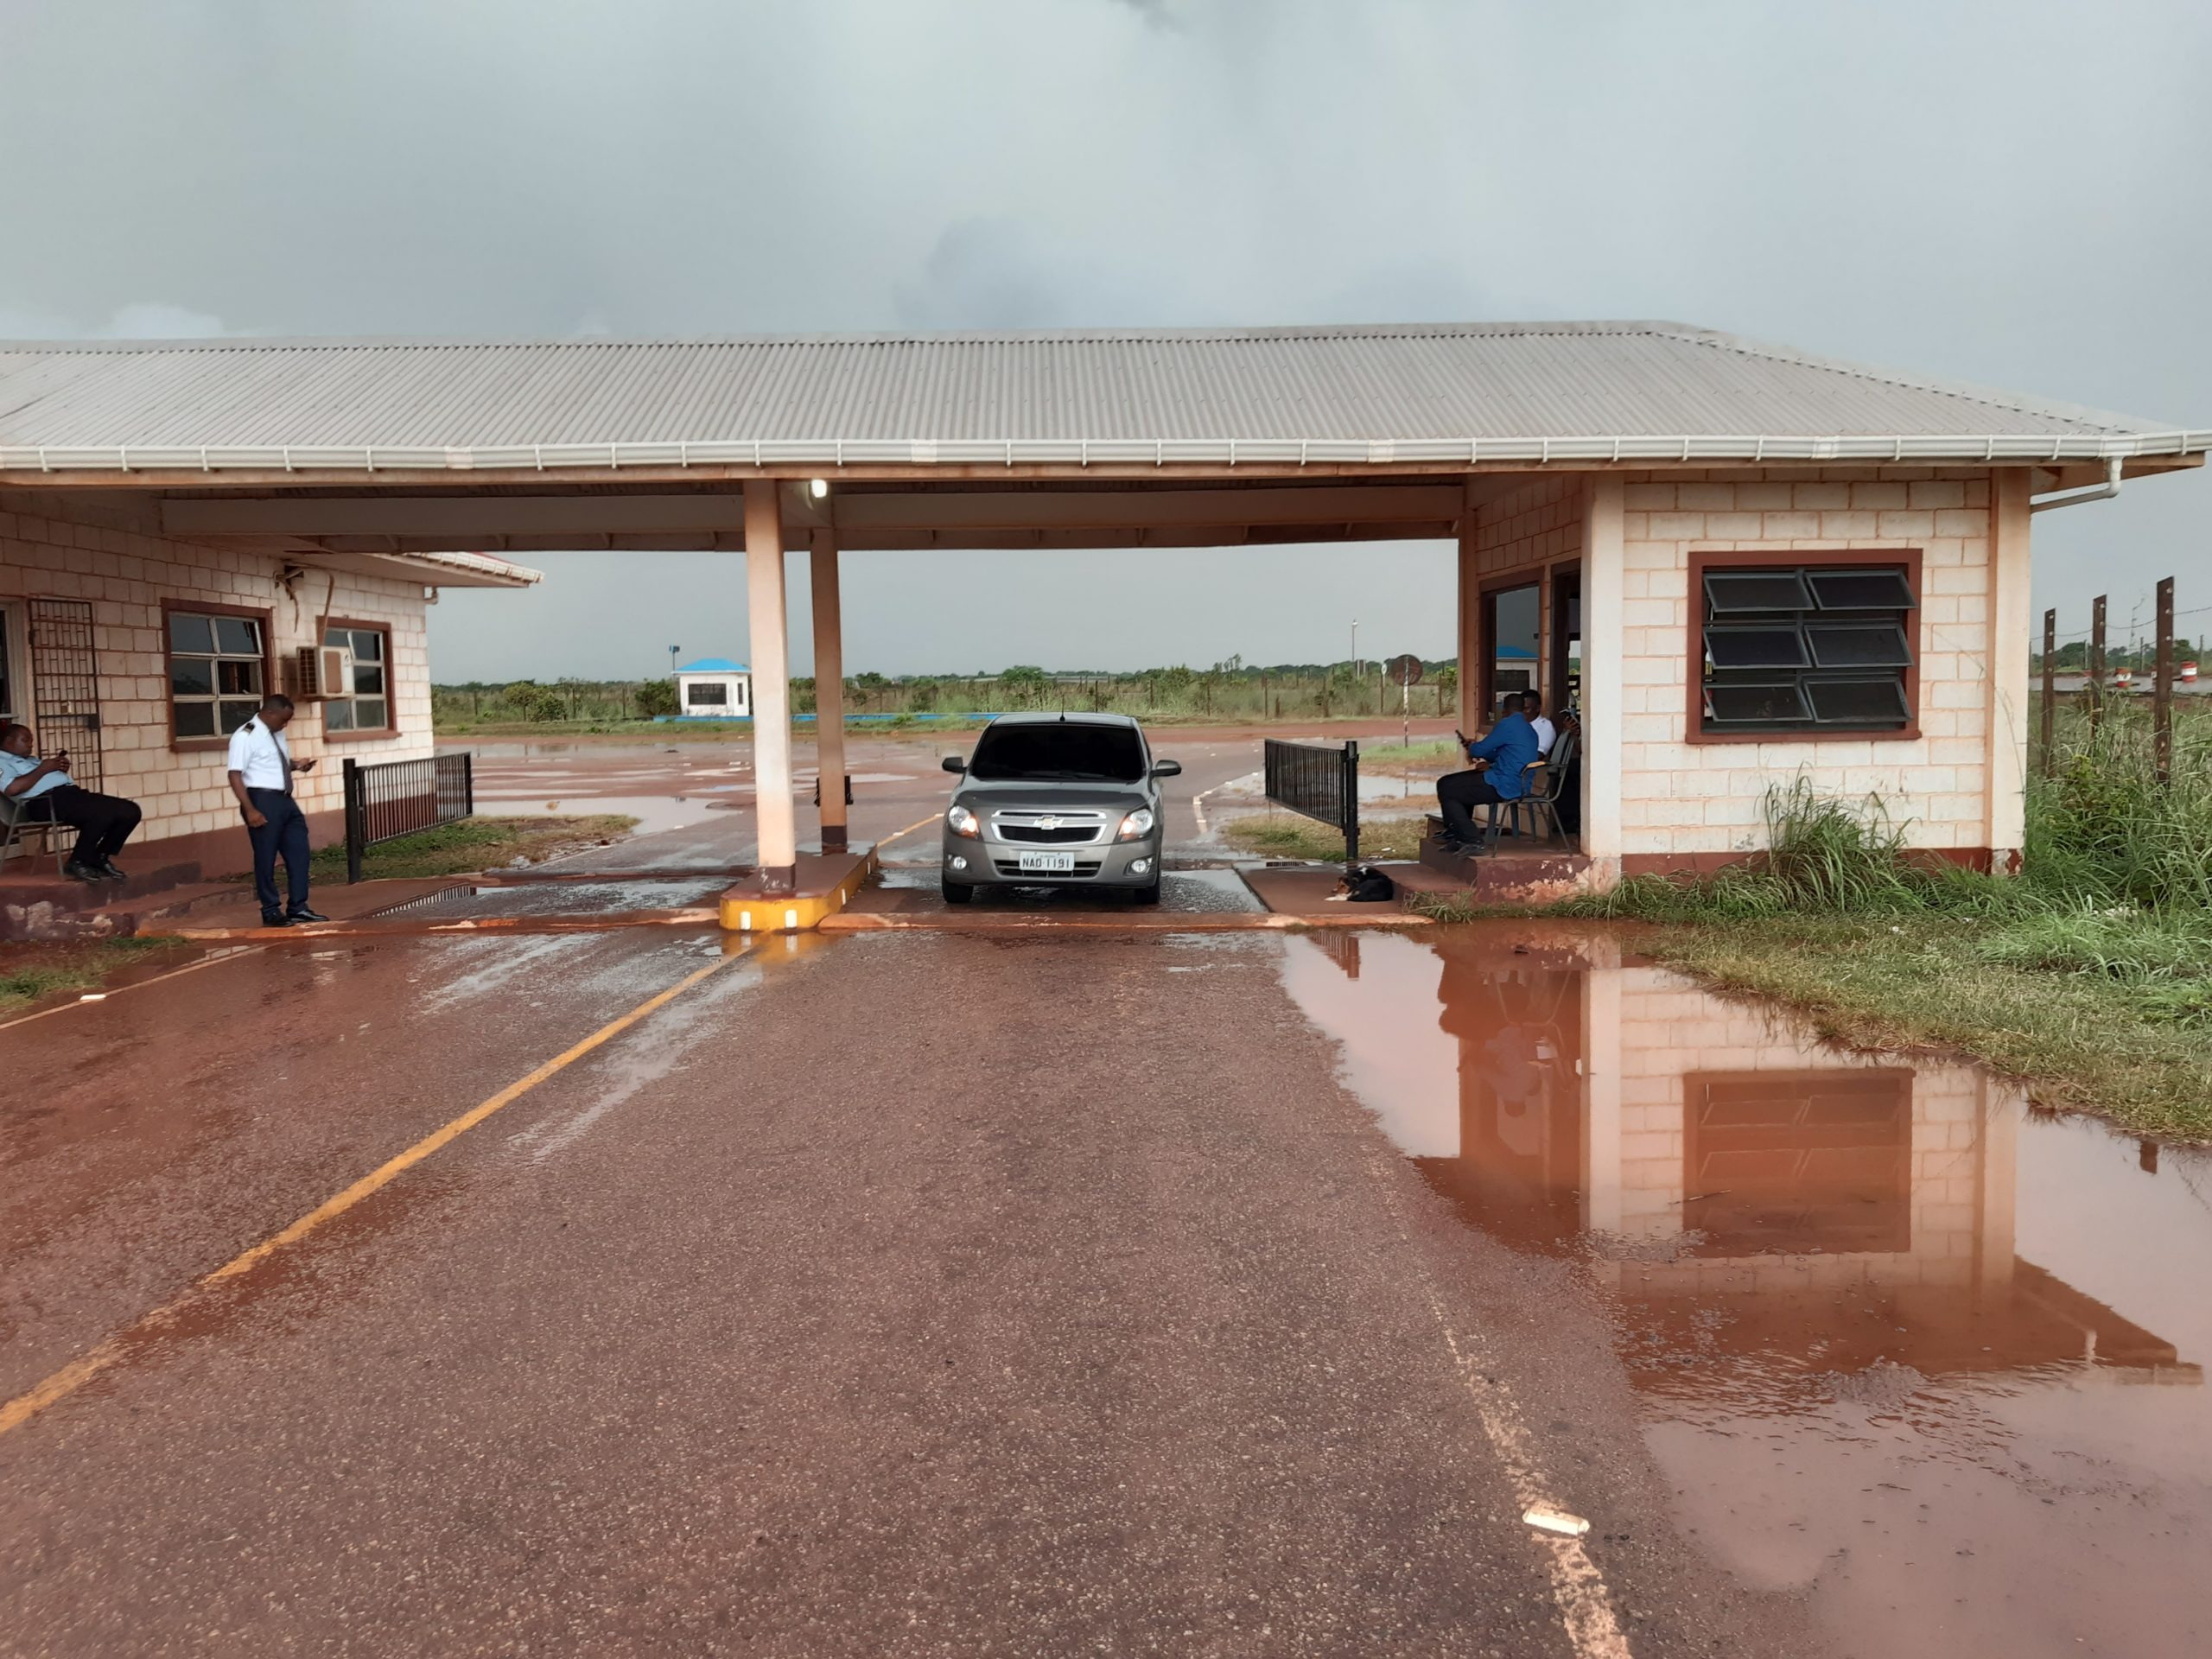 Brazil's Association of Doctors Petitions for Closure of Guyana/Brazil Border